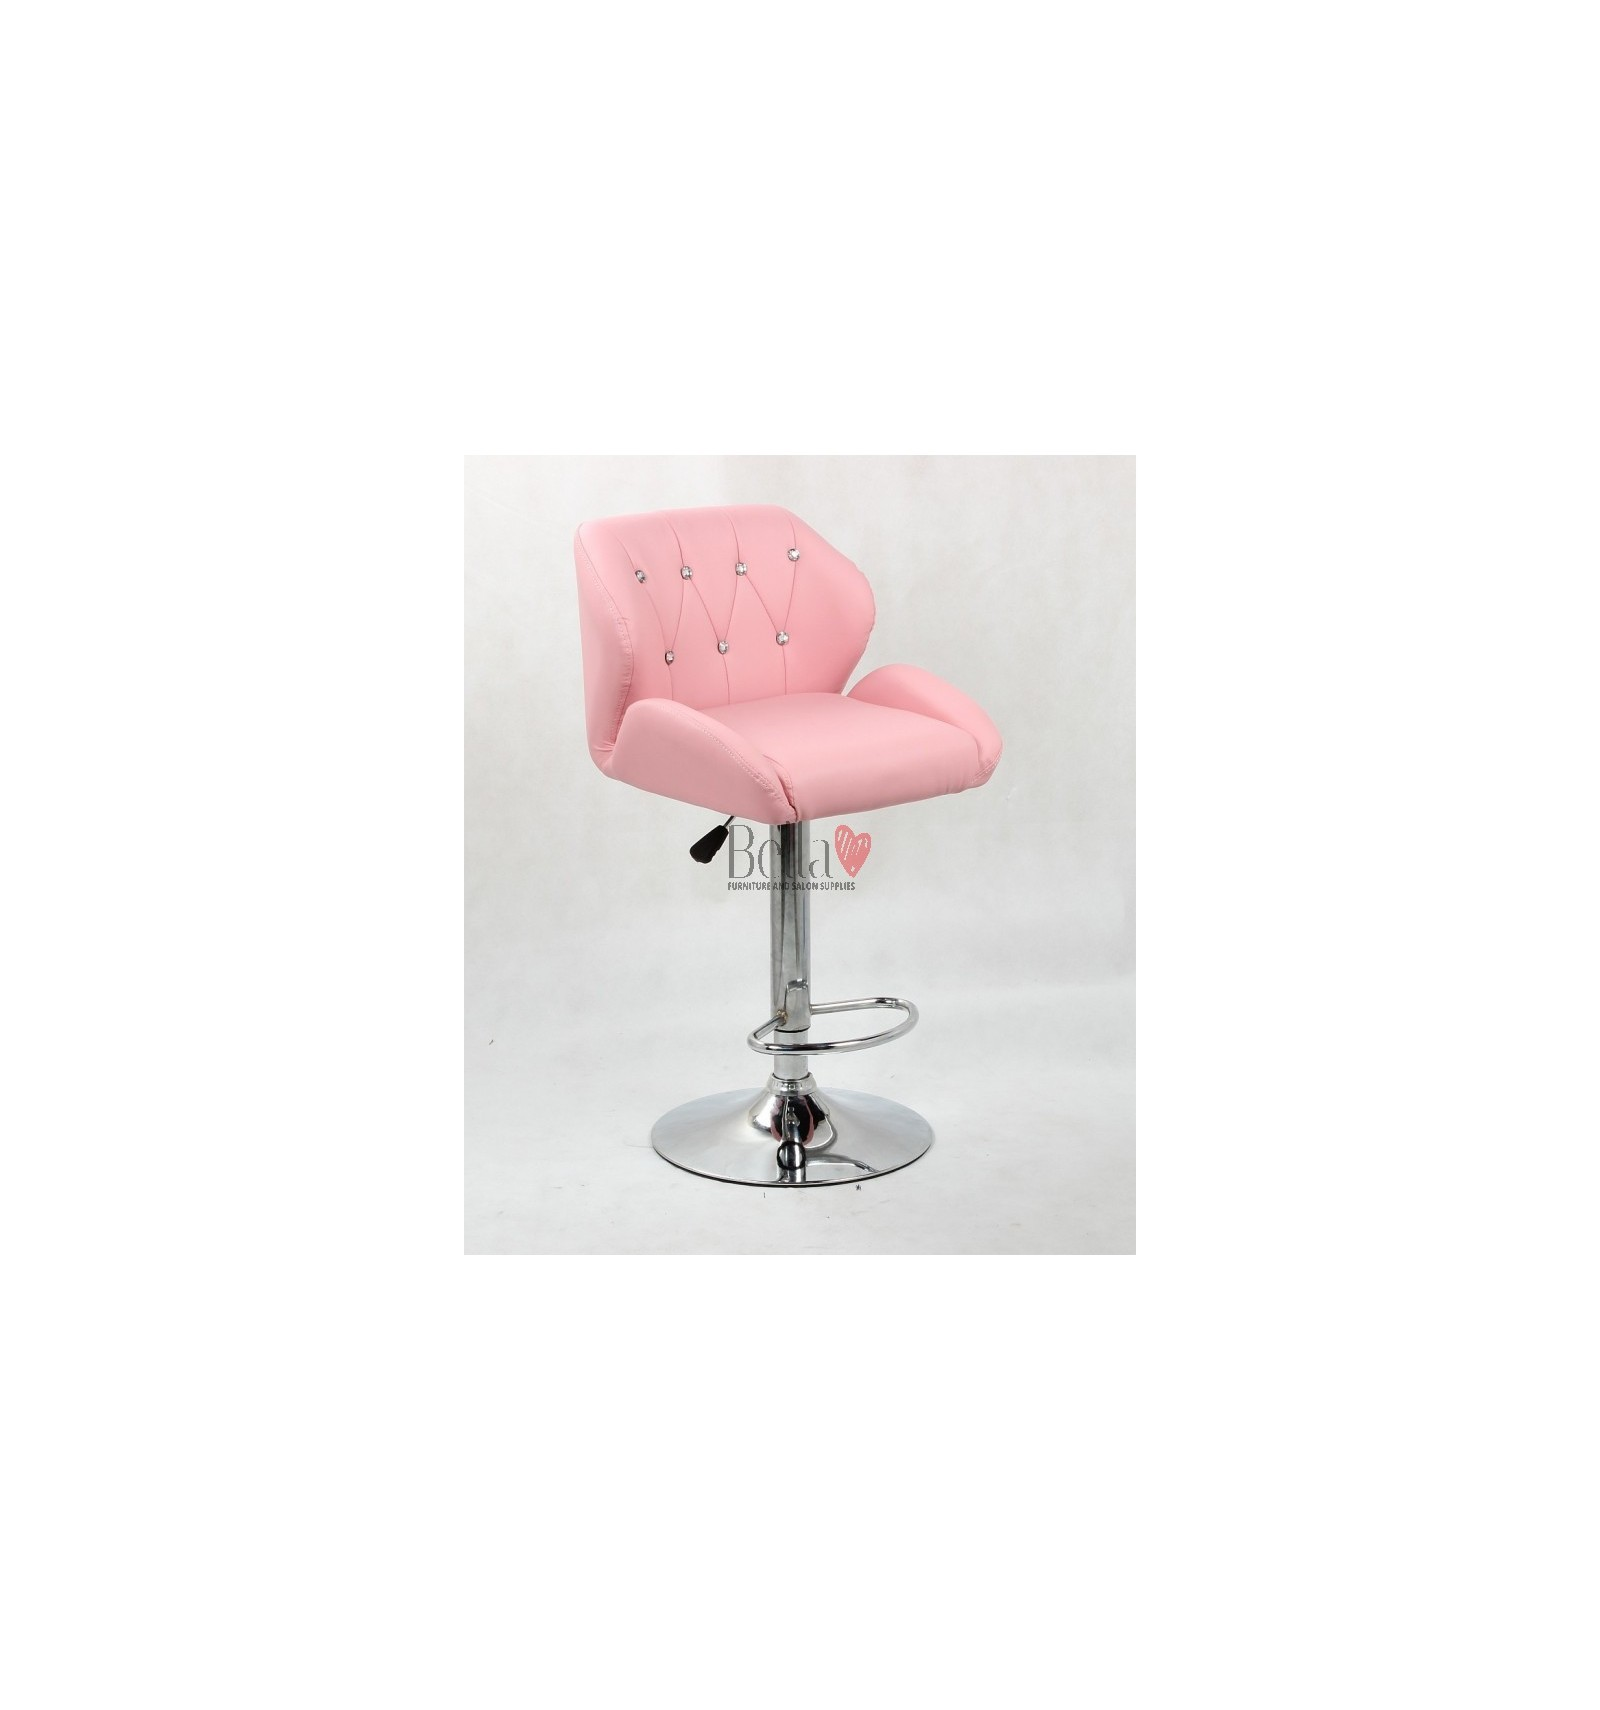 pink nail salon chairs golden lift chair makeup and reception high for sale